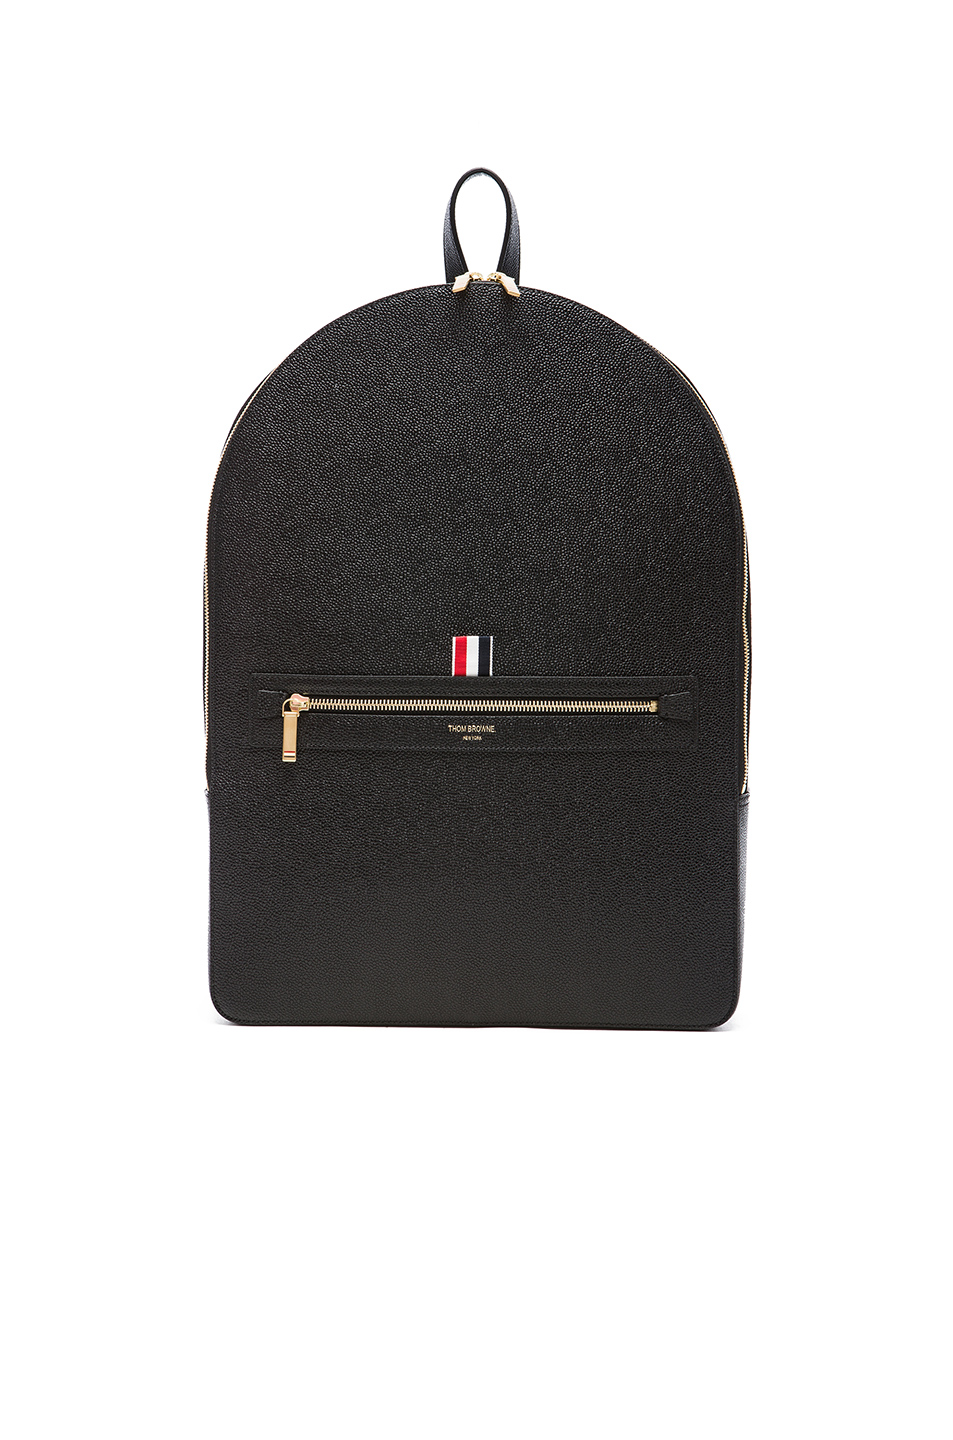 66286db166 Thom Browne Pebble Grain Backpack; Thom Browne Pebble Grain Backpack ...